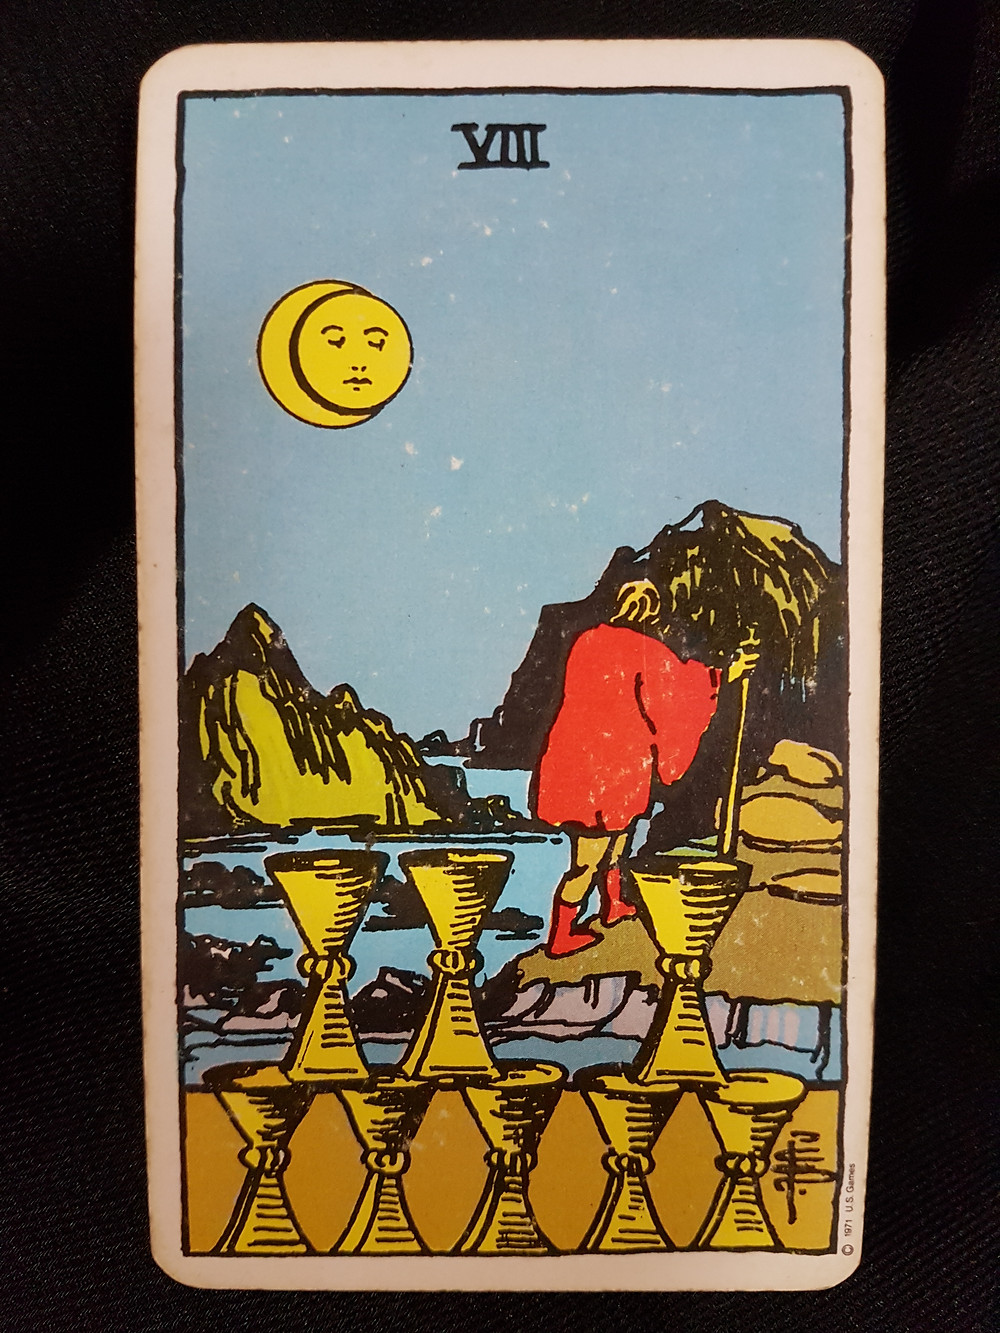 8 of Cups lynsreadings.com